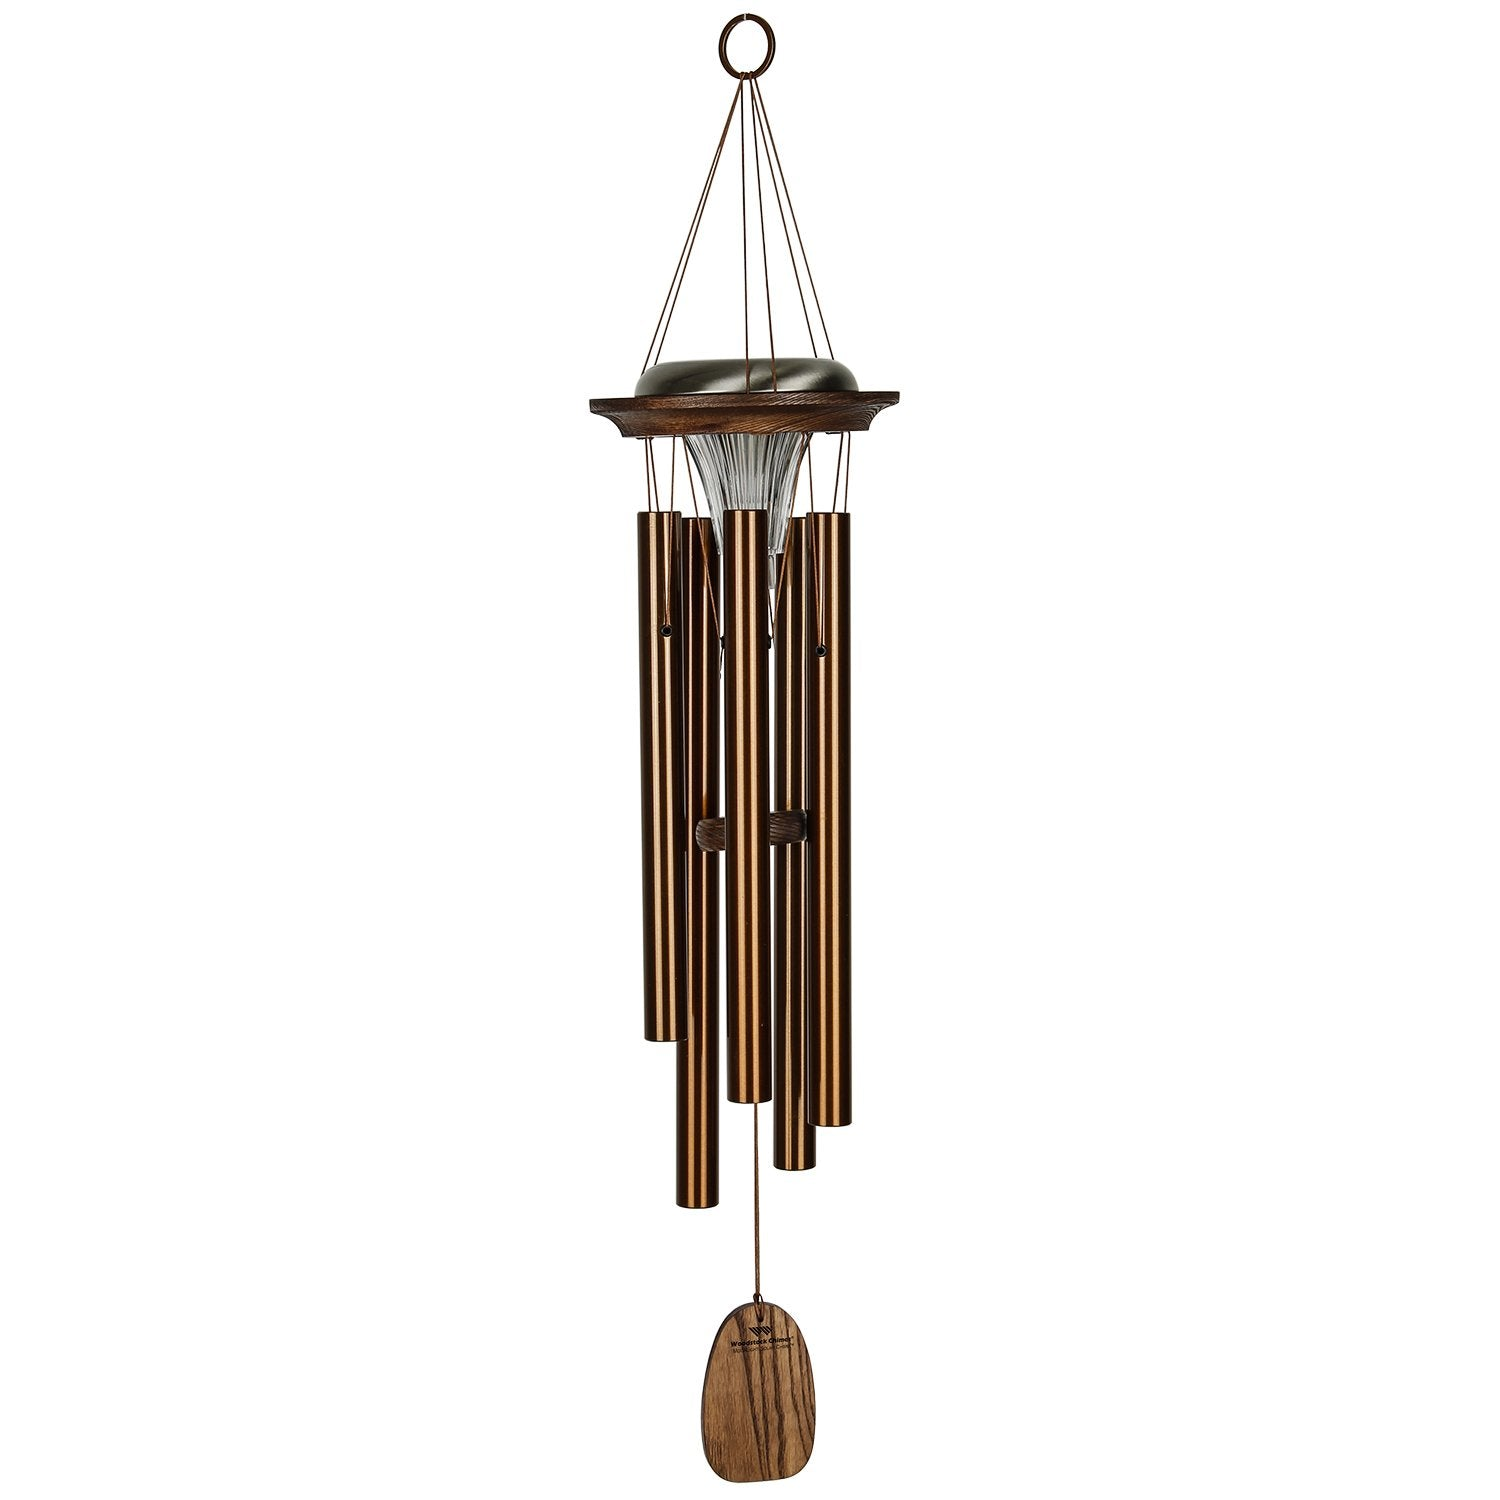 Moonlight Solar Chimes - Bronze full product image